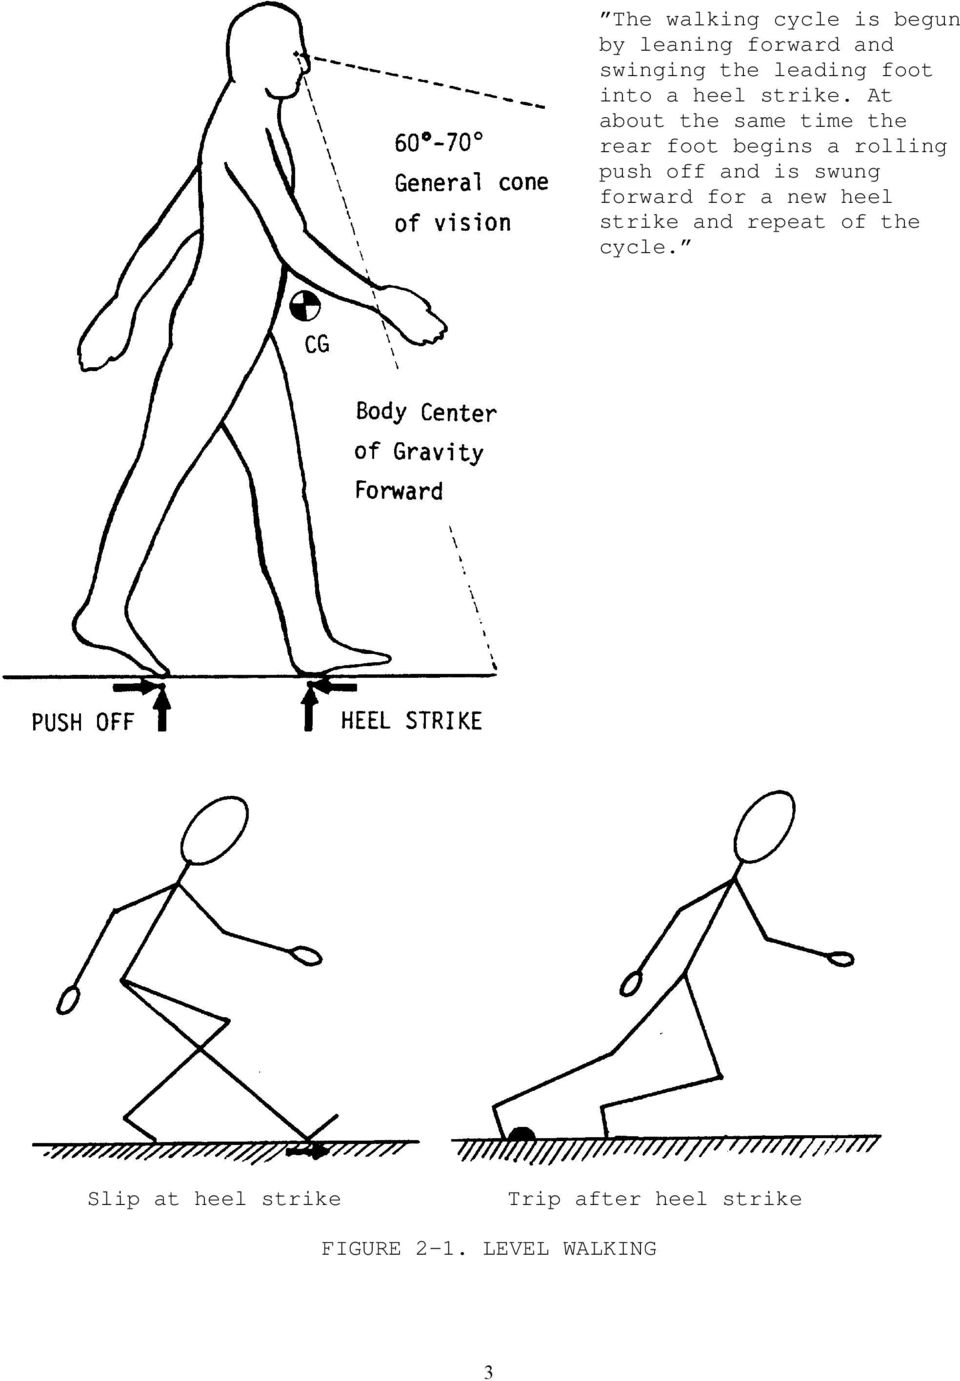 At about the same time the rear foot begins a rolling push off and is